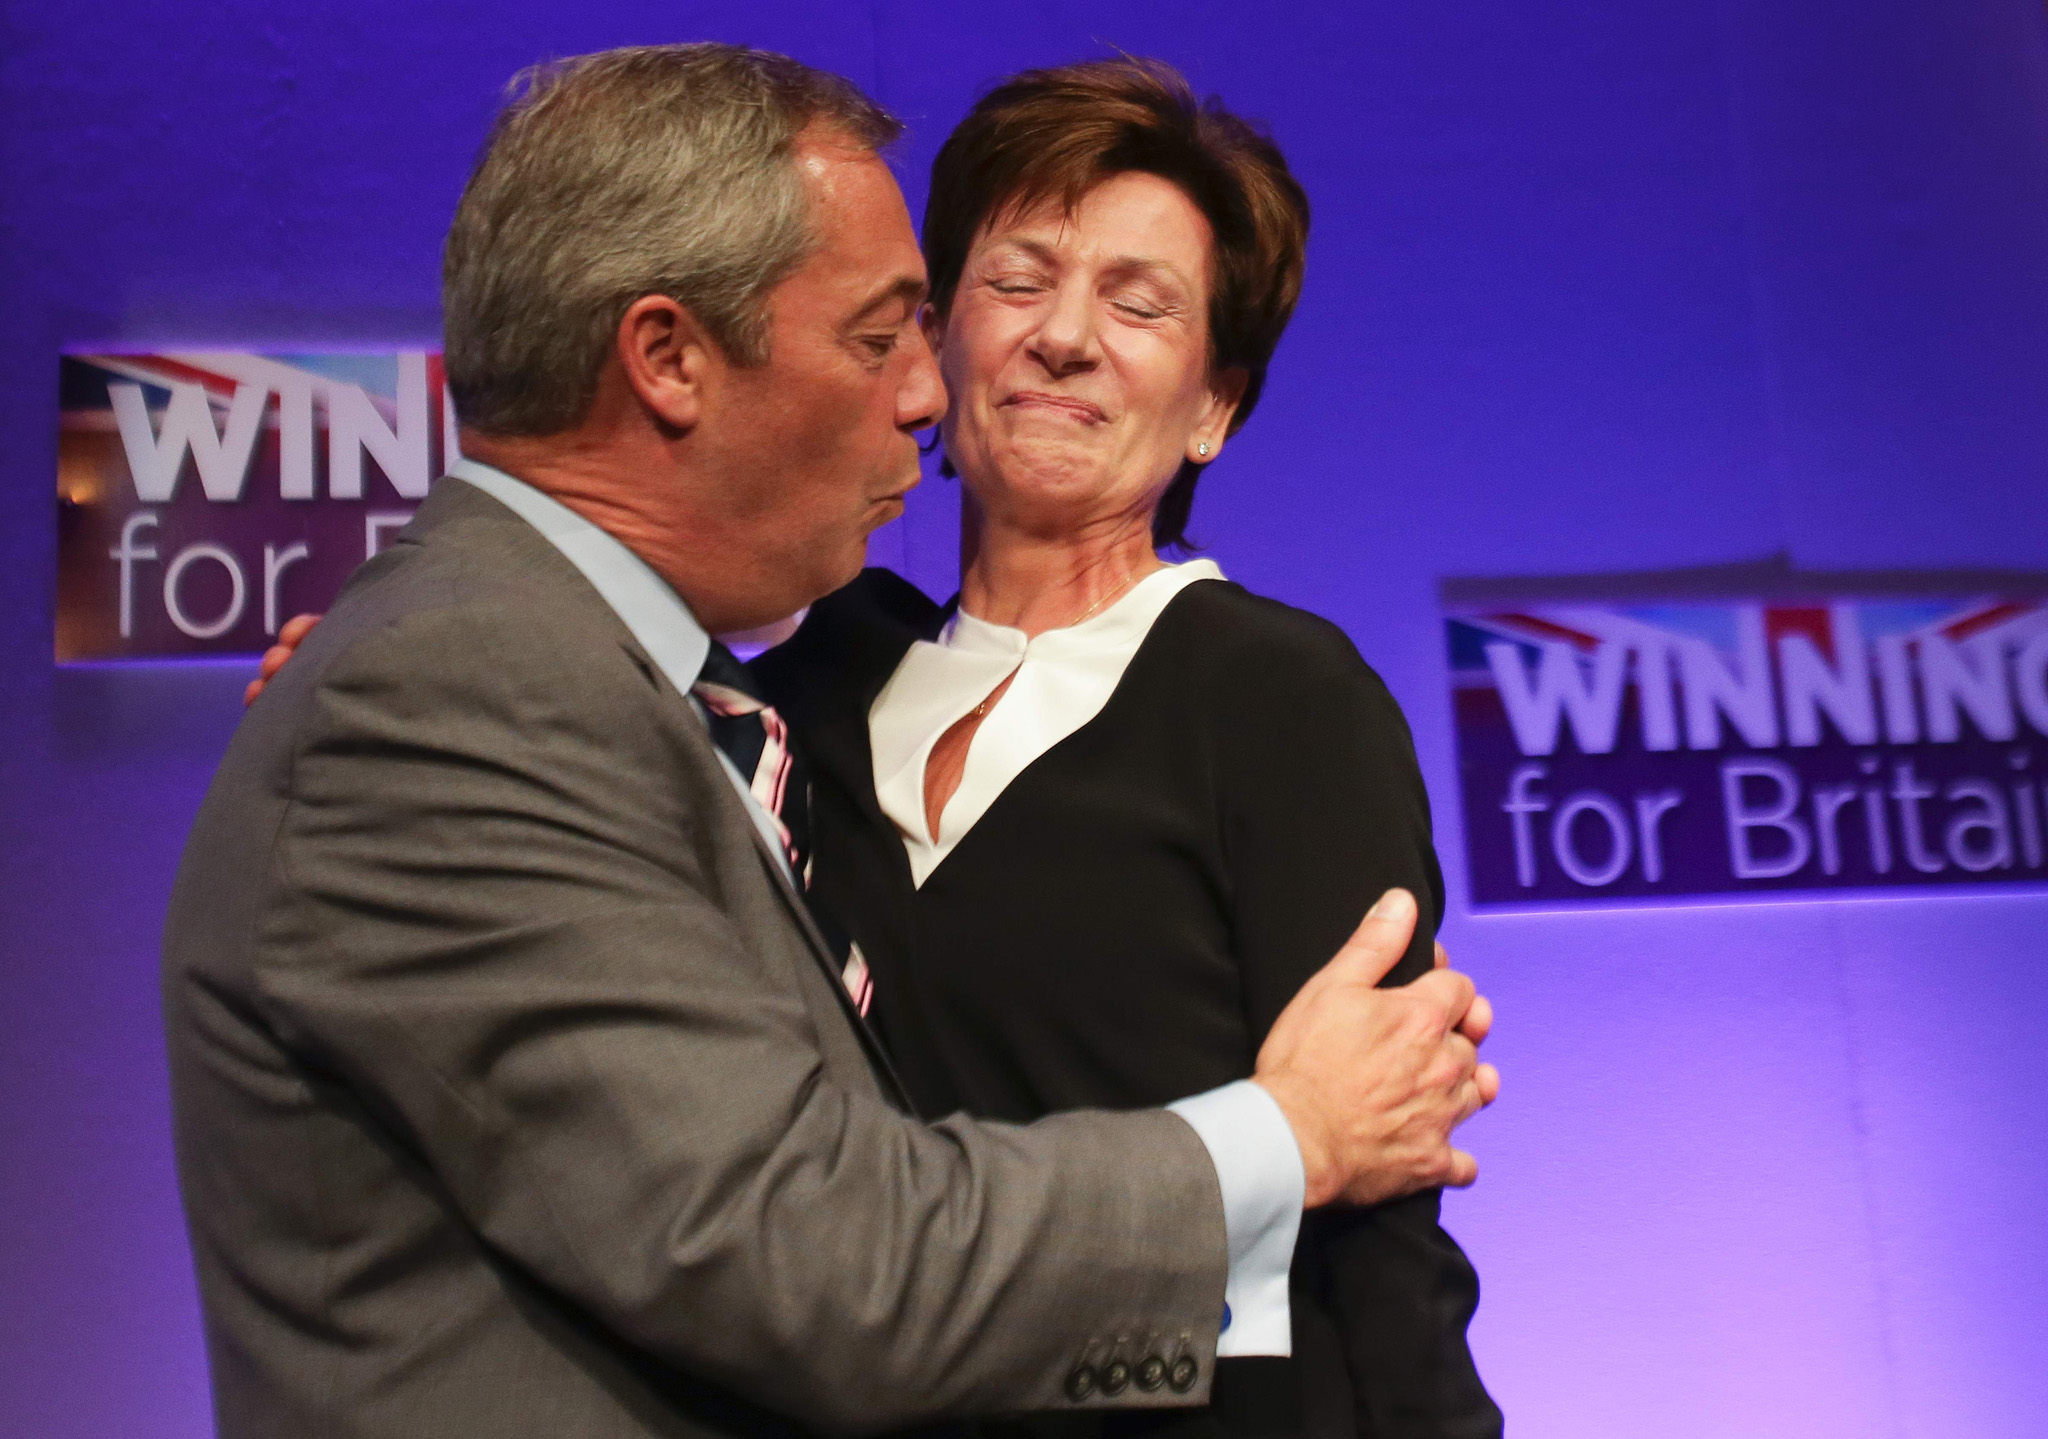 Outgoinng leader Nigel Farage (L) embraces new leader of the anti-EU UK Independence Party (UKIP) Diane James (R) as she is introduced at the UKIP Autumn Conference in Bournemouth, on the southern coast of England